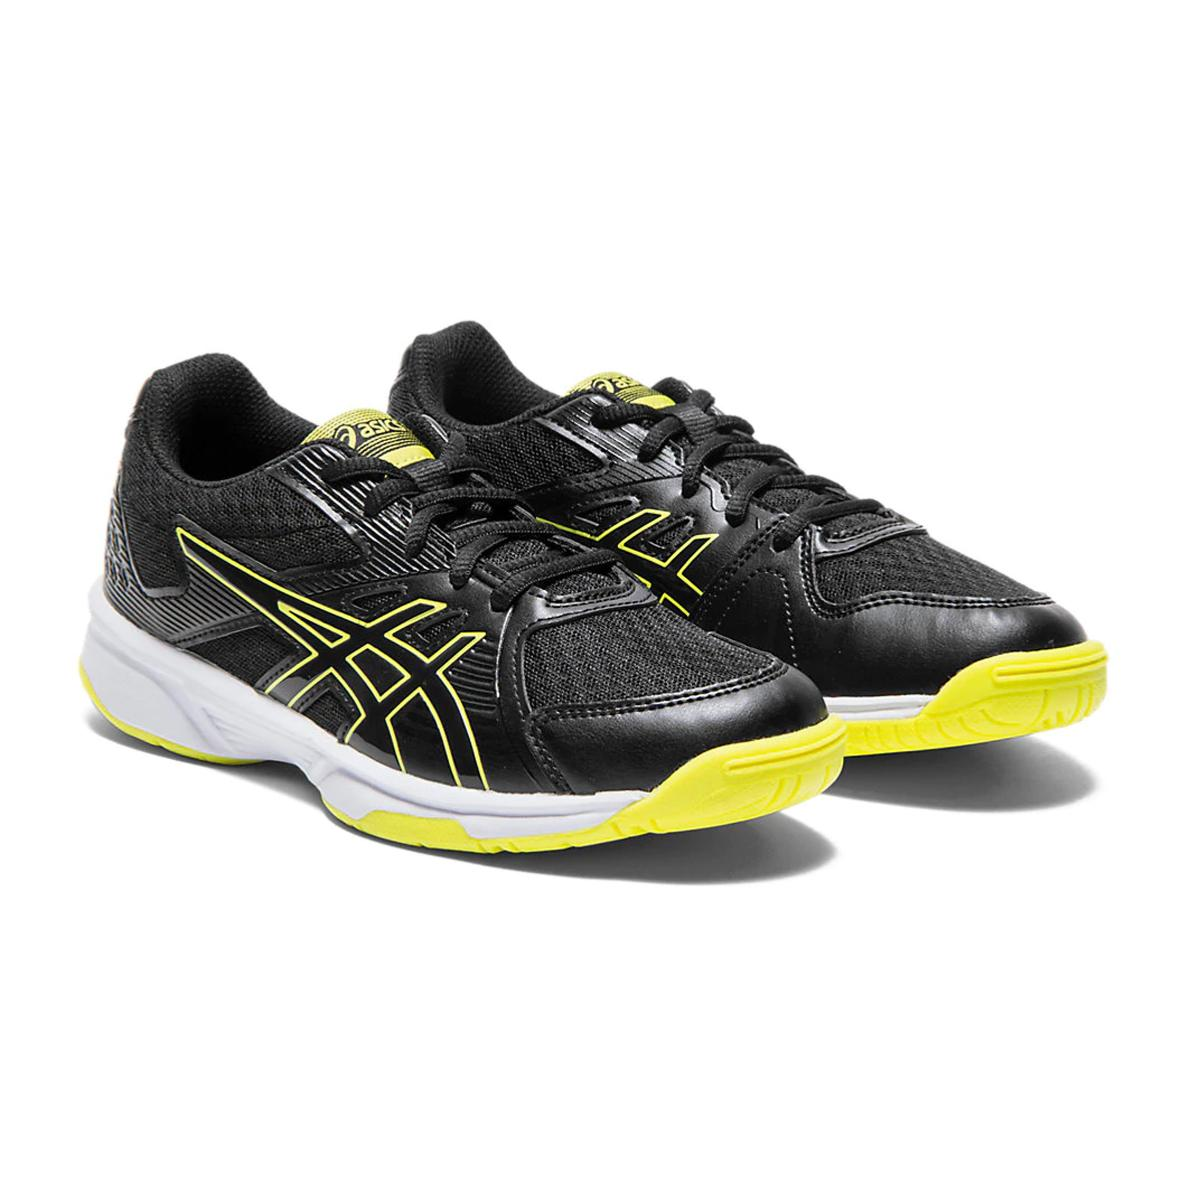 Zapatillas Asics Gel Upcourt 3